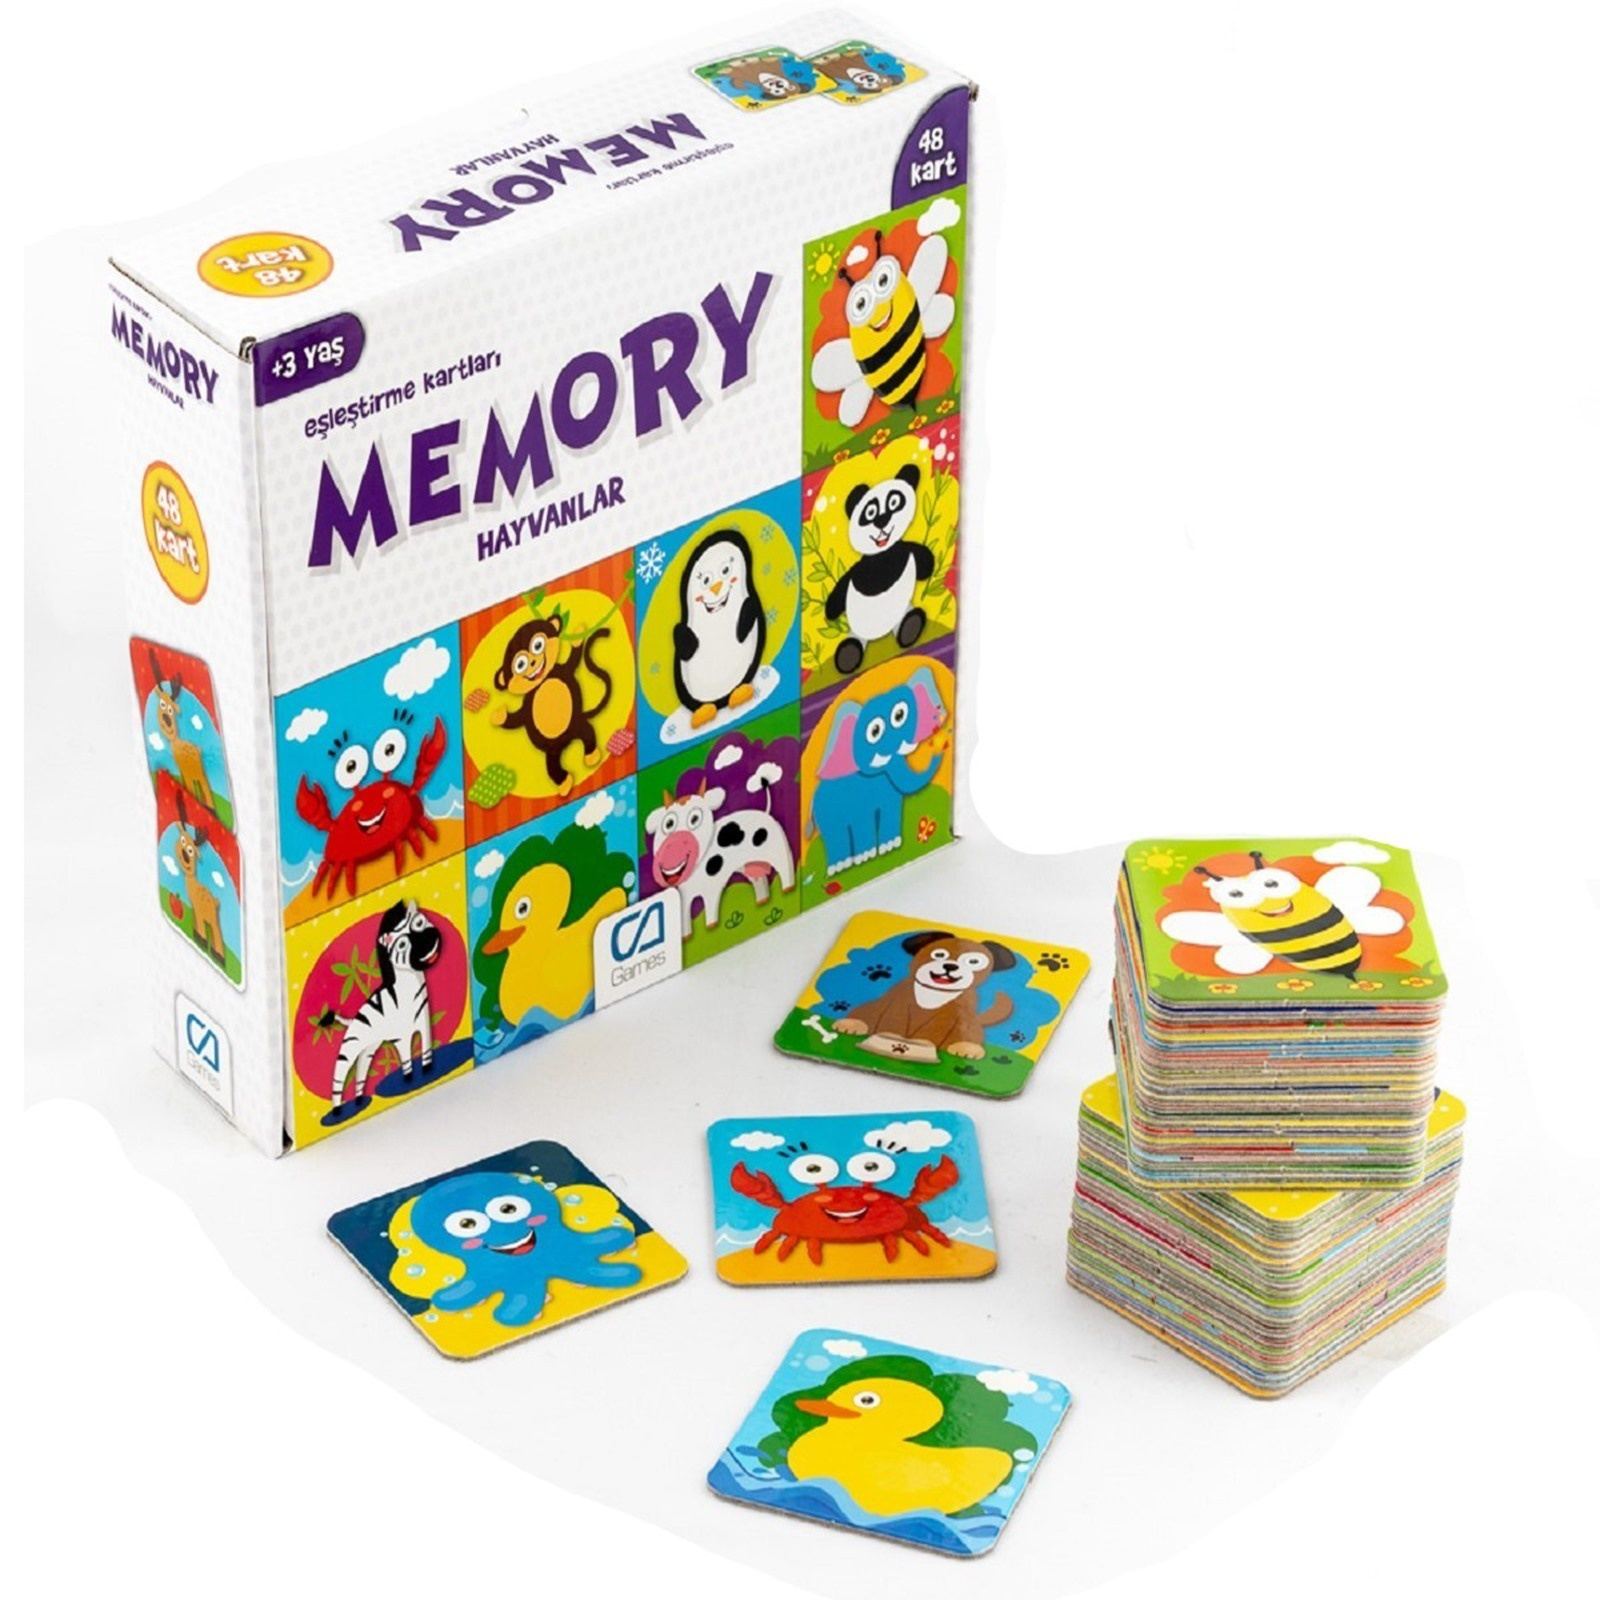 Ebebek Ca Games Memory Animals 48 Card 3 Years+